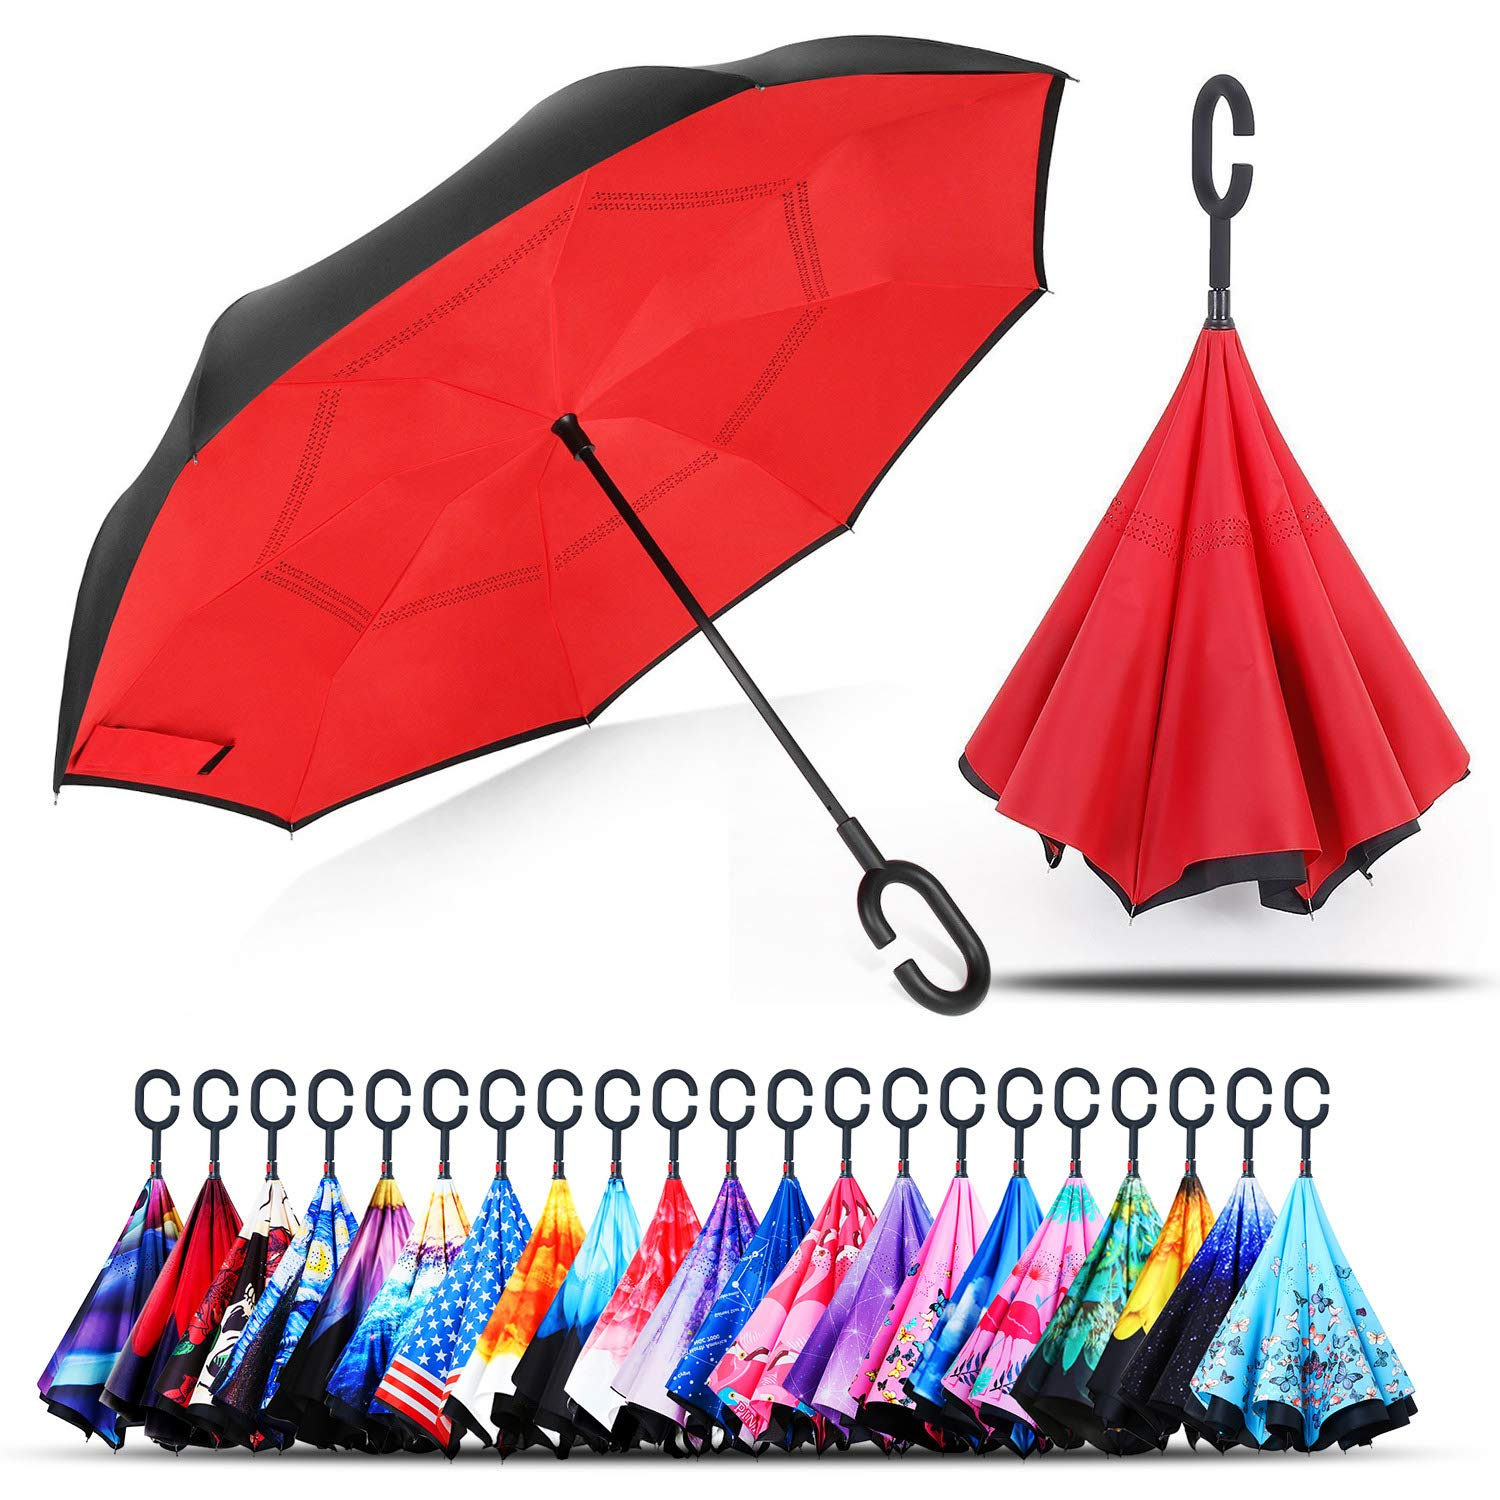 Owen Kyne Windproof Double Layer Folding Inverted Umbrella, Self Stand Upside-Down Rain Protection Car Reverse Umbrellas with C-Shaped Handle (Red) by Owen Kyne